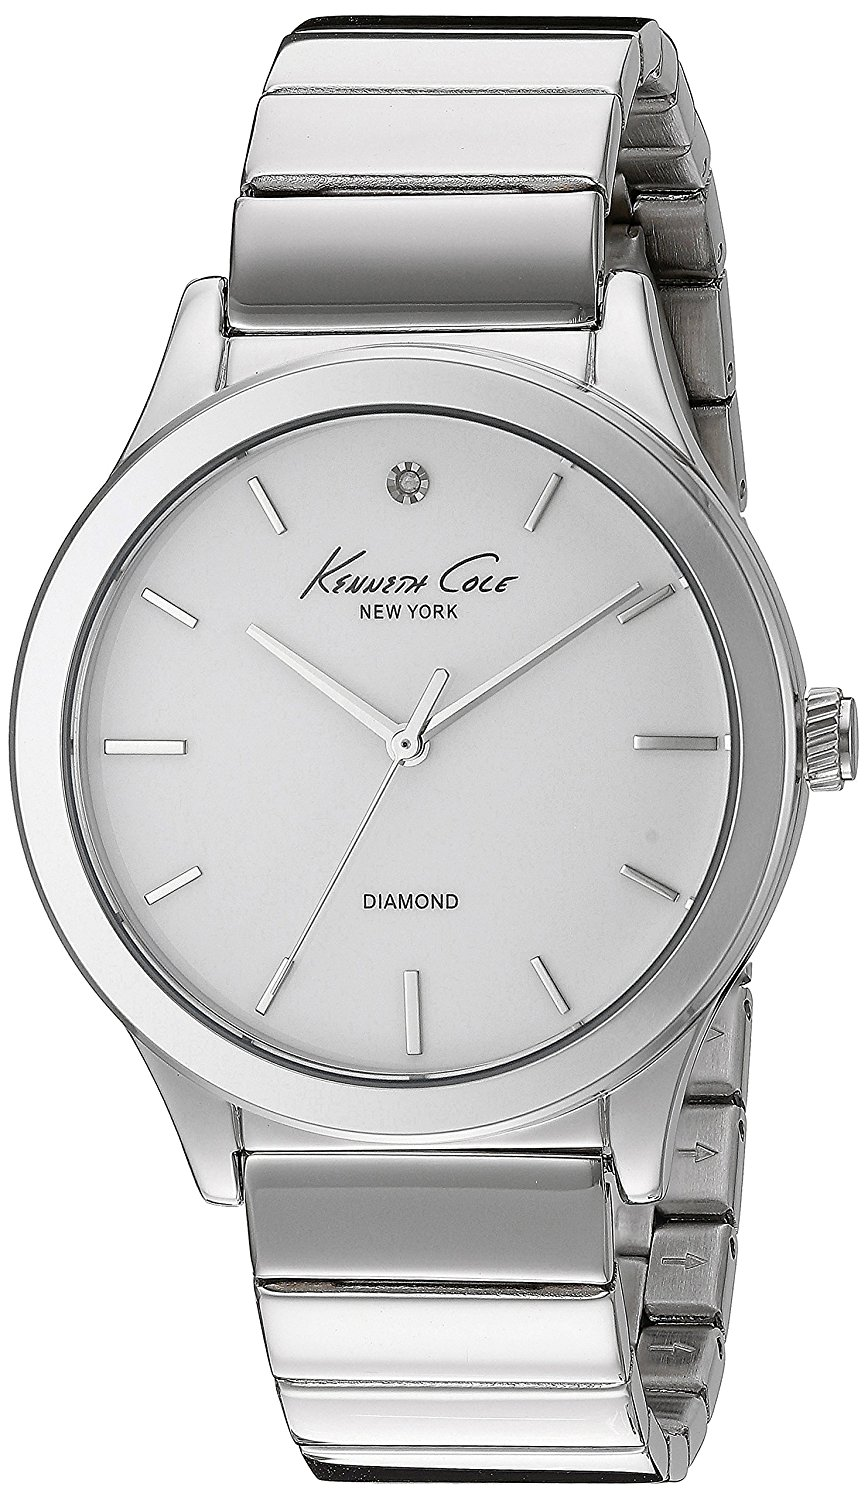 Kenneth Cole New York Women's 10024370 Genuine Diamond Analog Display Japanese Quartz Silver Watch: Kenneth Cole